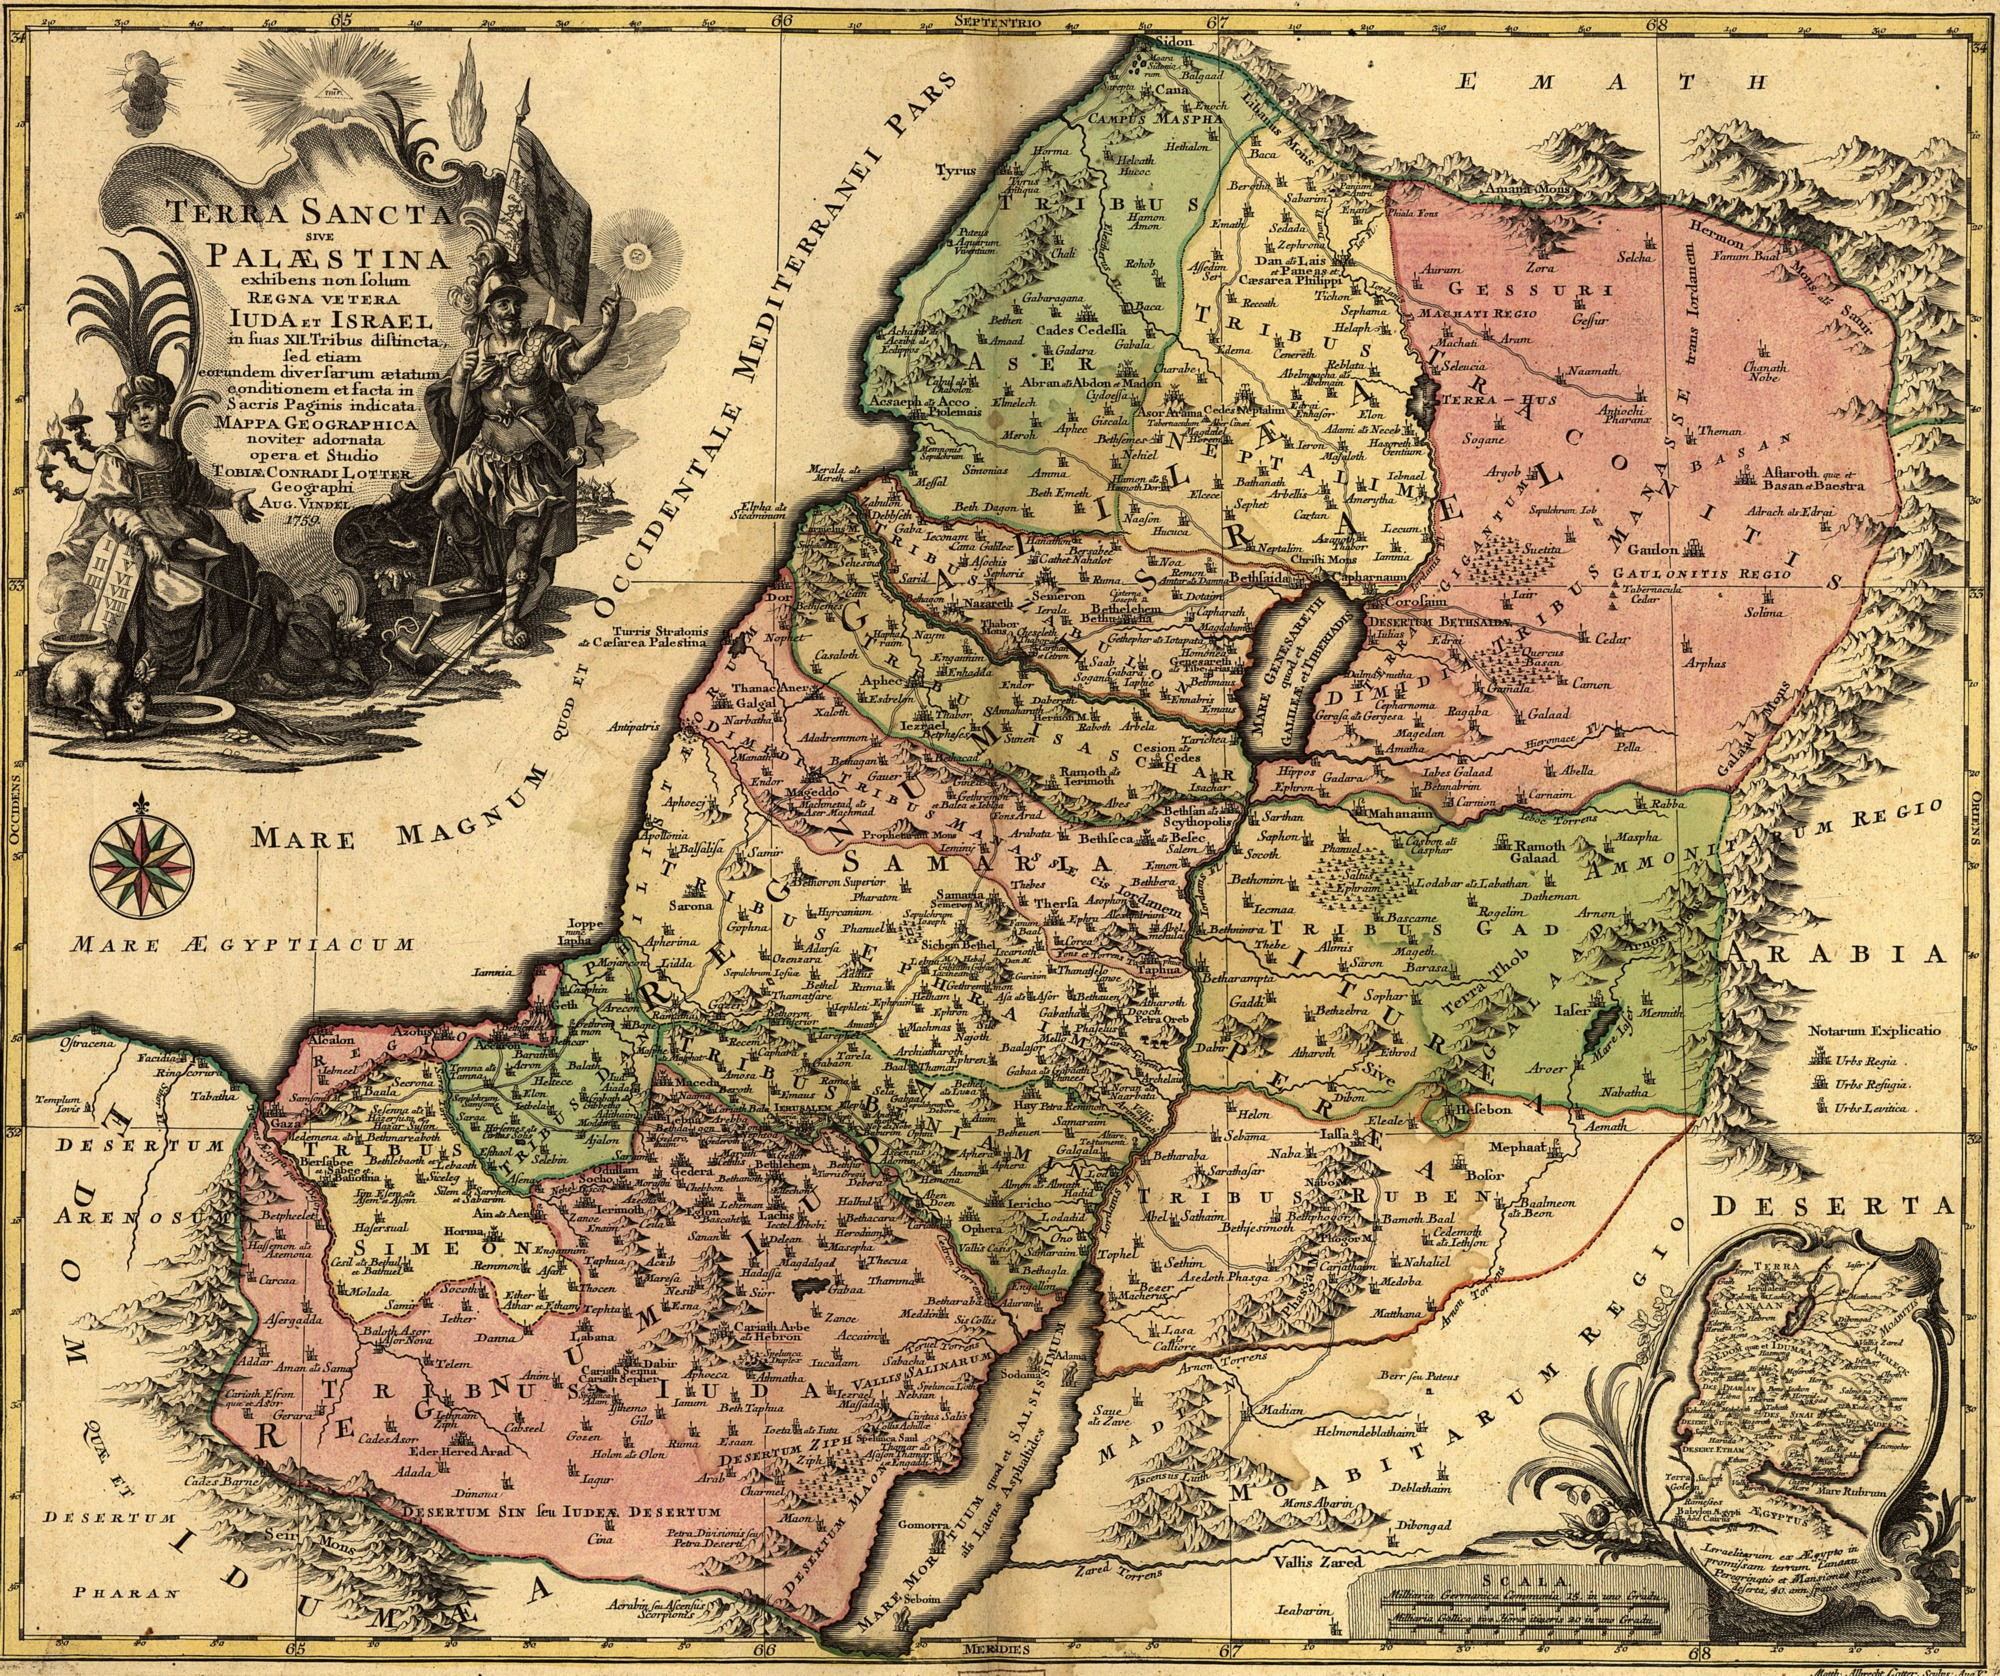 1759 map of the tribal allotments of Israel